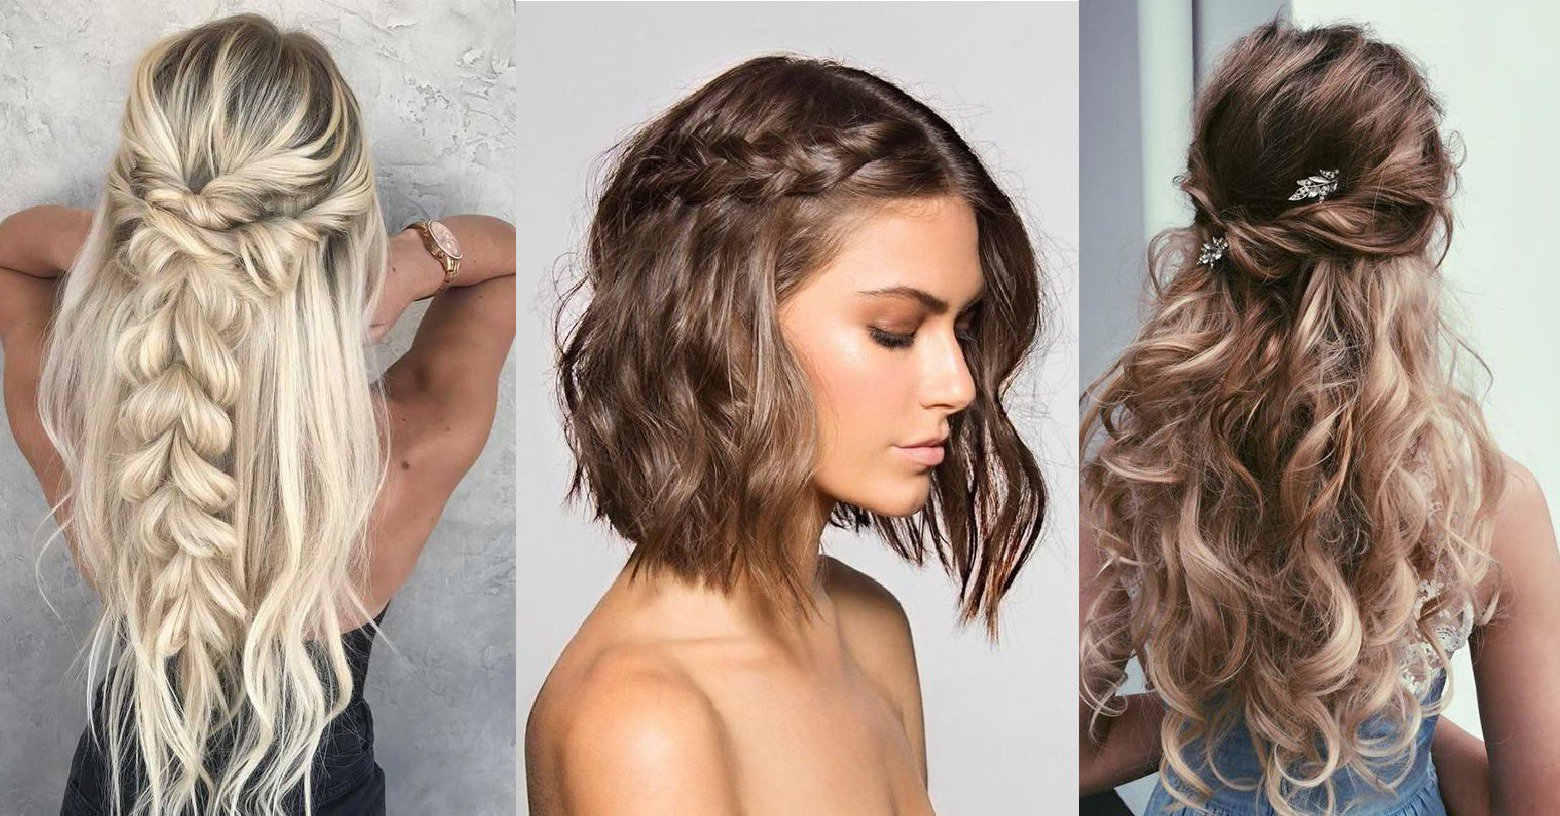 Favorite Half Up Half Down Boho Braided Hairstyles Intended For Stylish Prom Hairstyles Half Up Half Down (View 14 of 20)